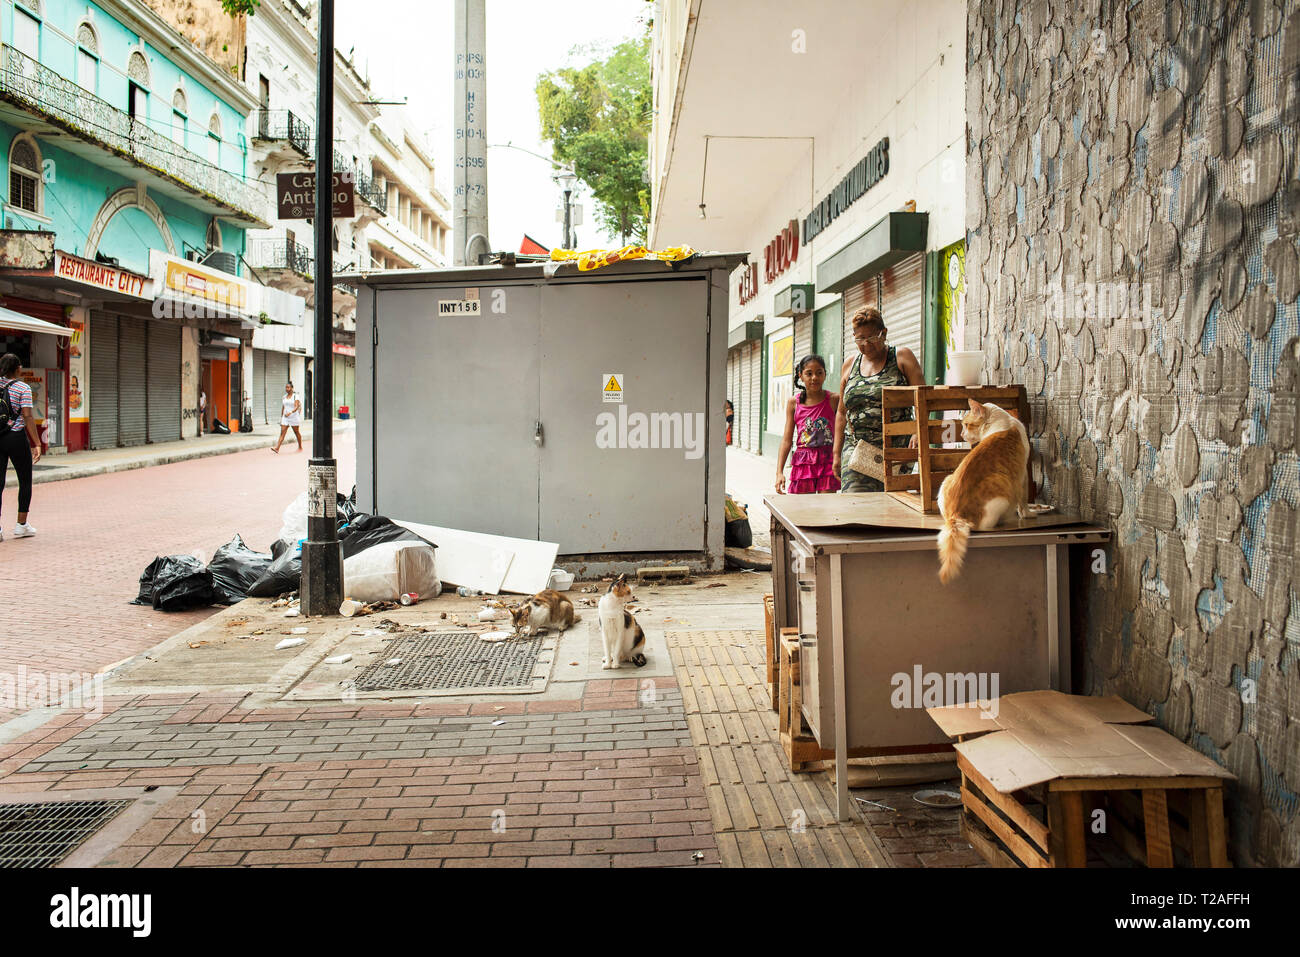 Street cats feeding from leftover food on Avenida Central, the main shopping street of Panama City, Panama, Central America. Oct 2018 - Stock Image